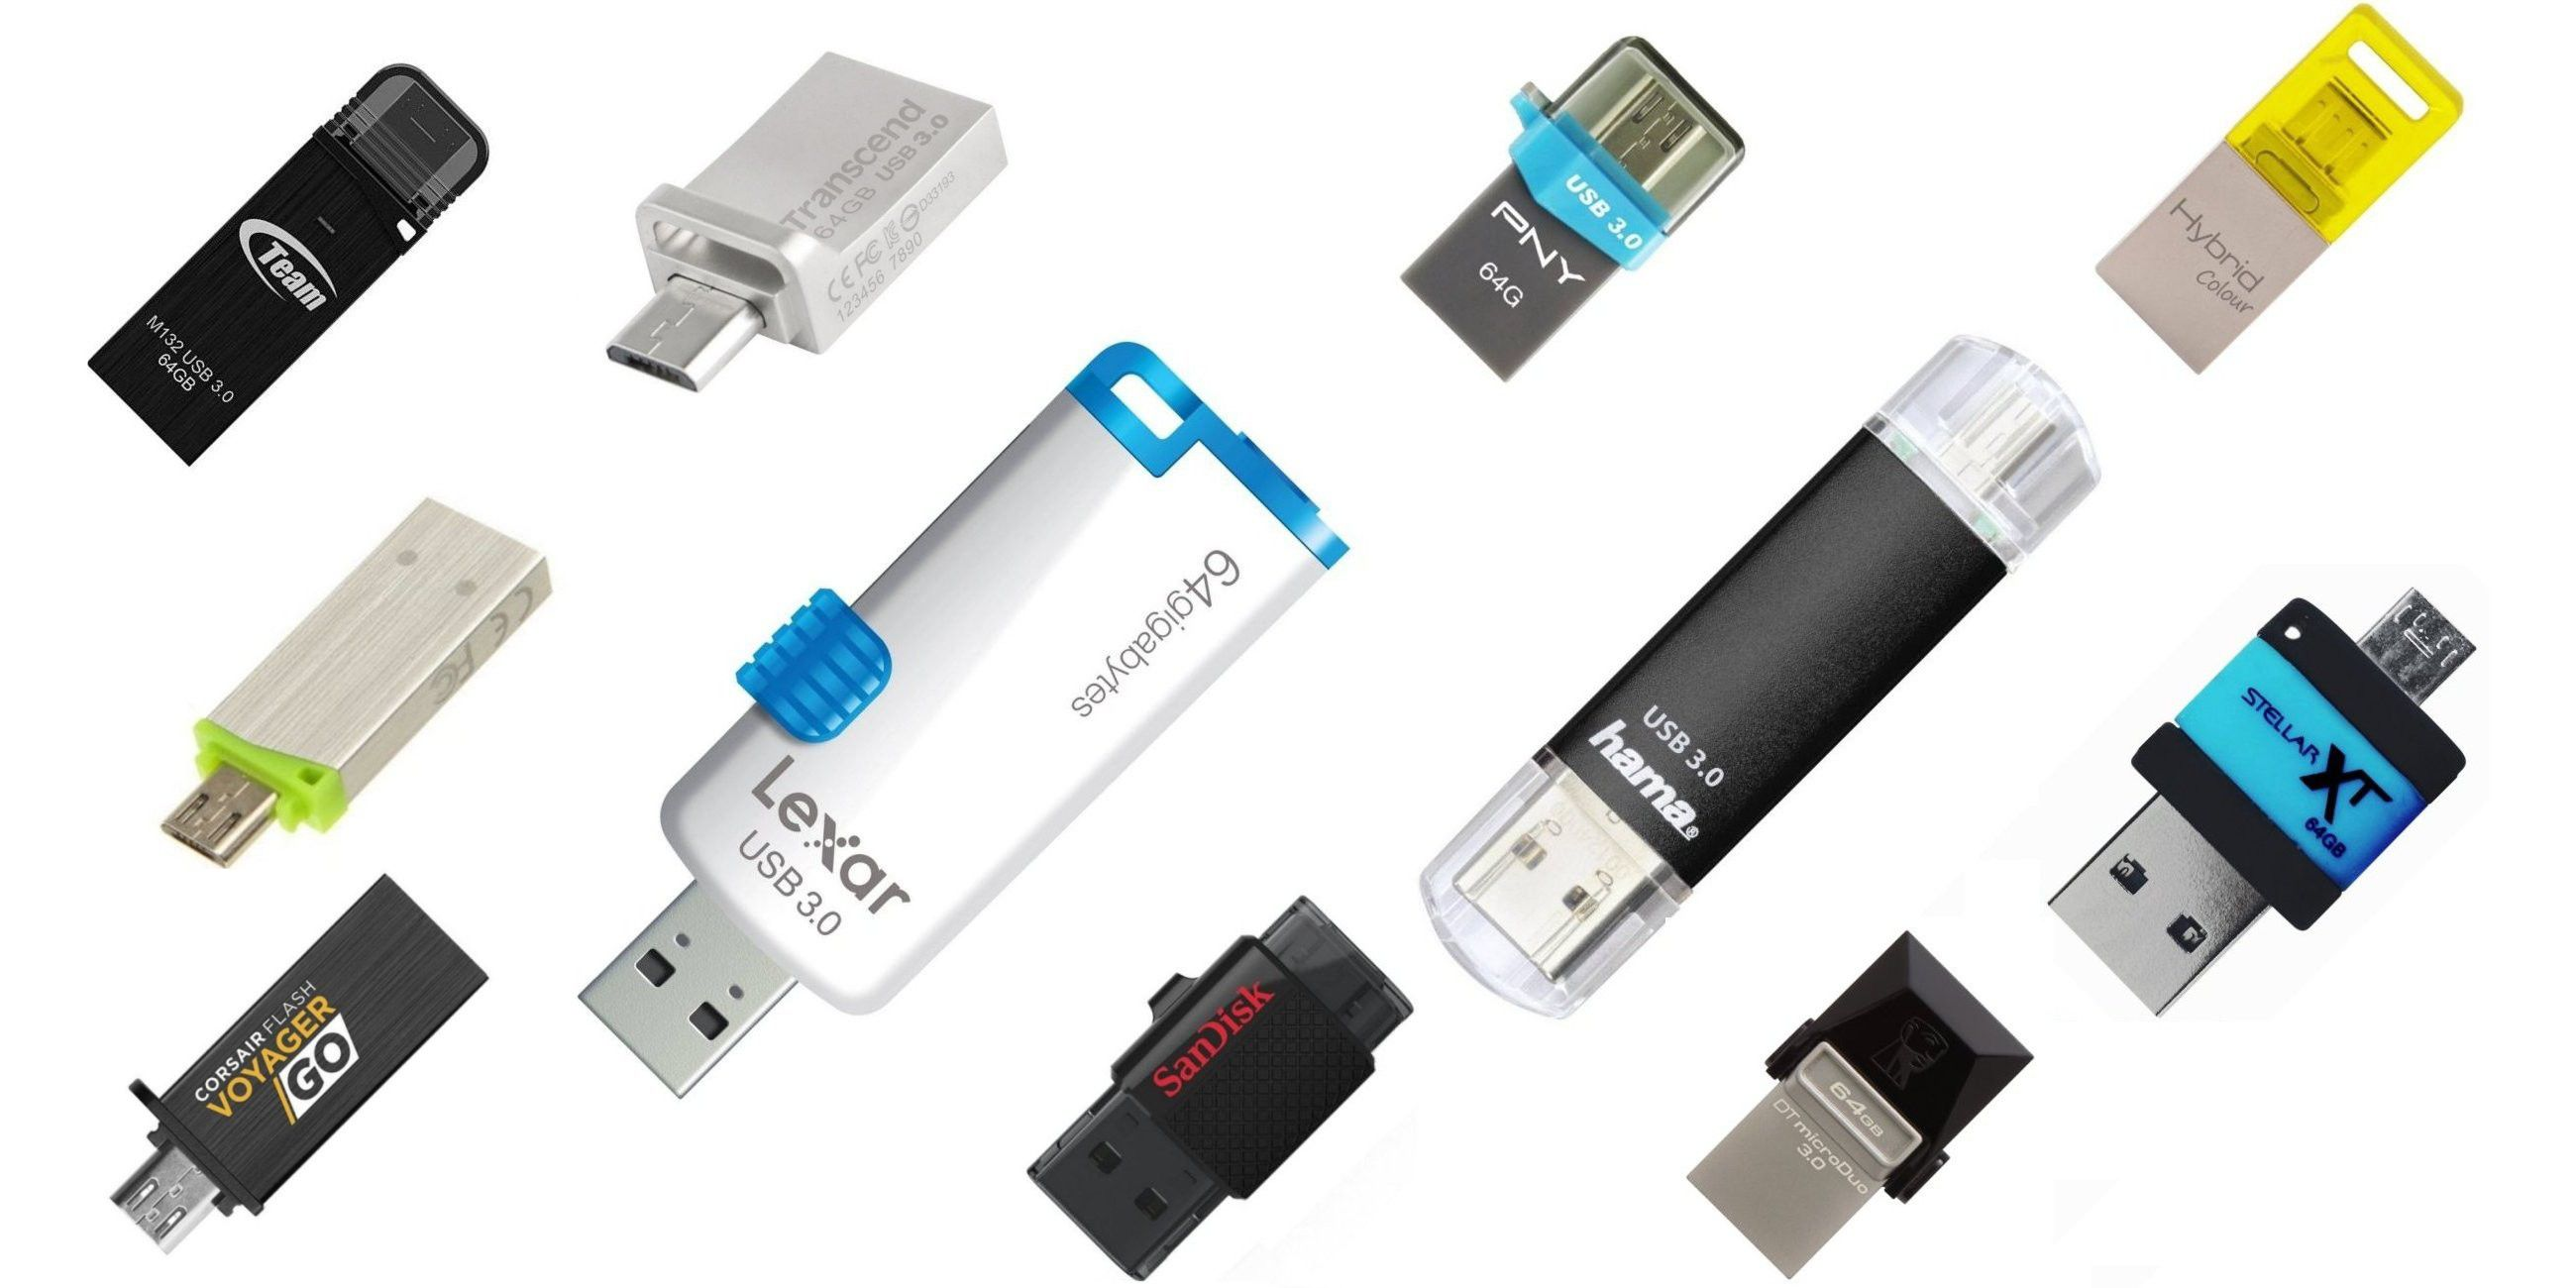 Otg Kabel Media Markt On The Go Otg Usb Sticks Mit 64 Gb Im Test Pc Welt